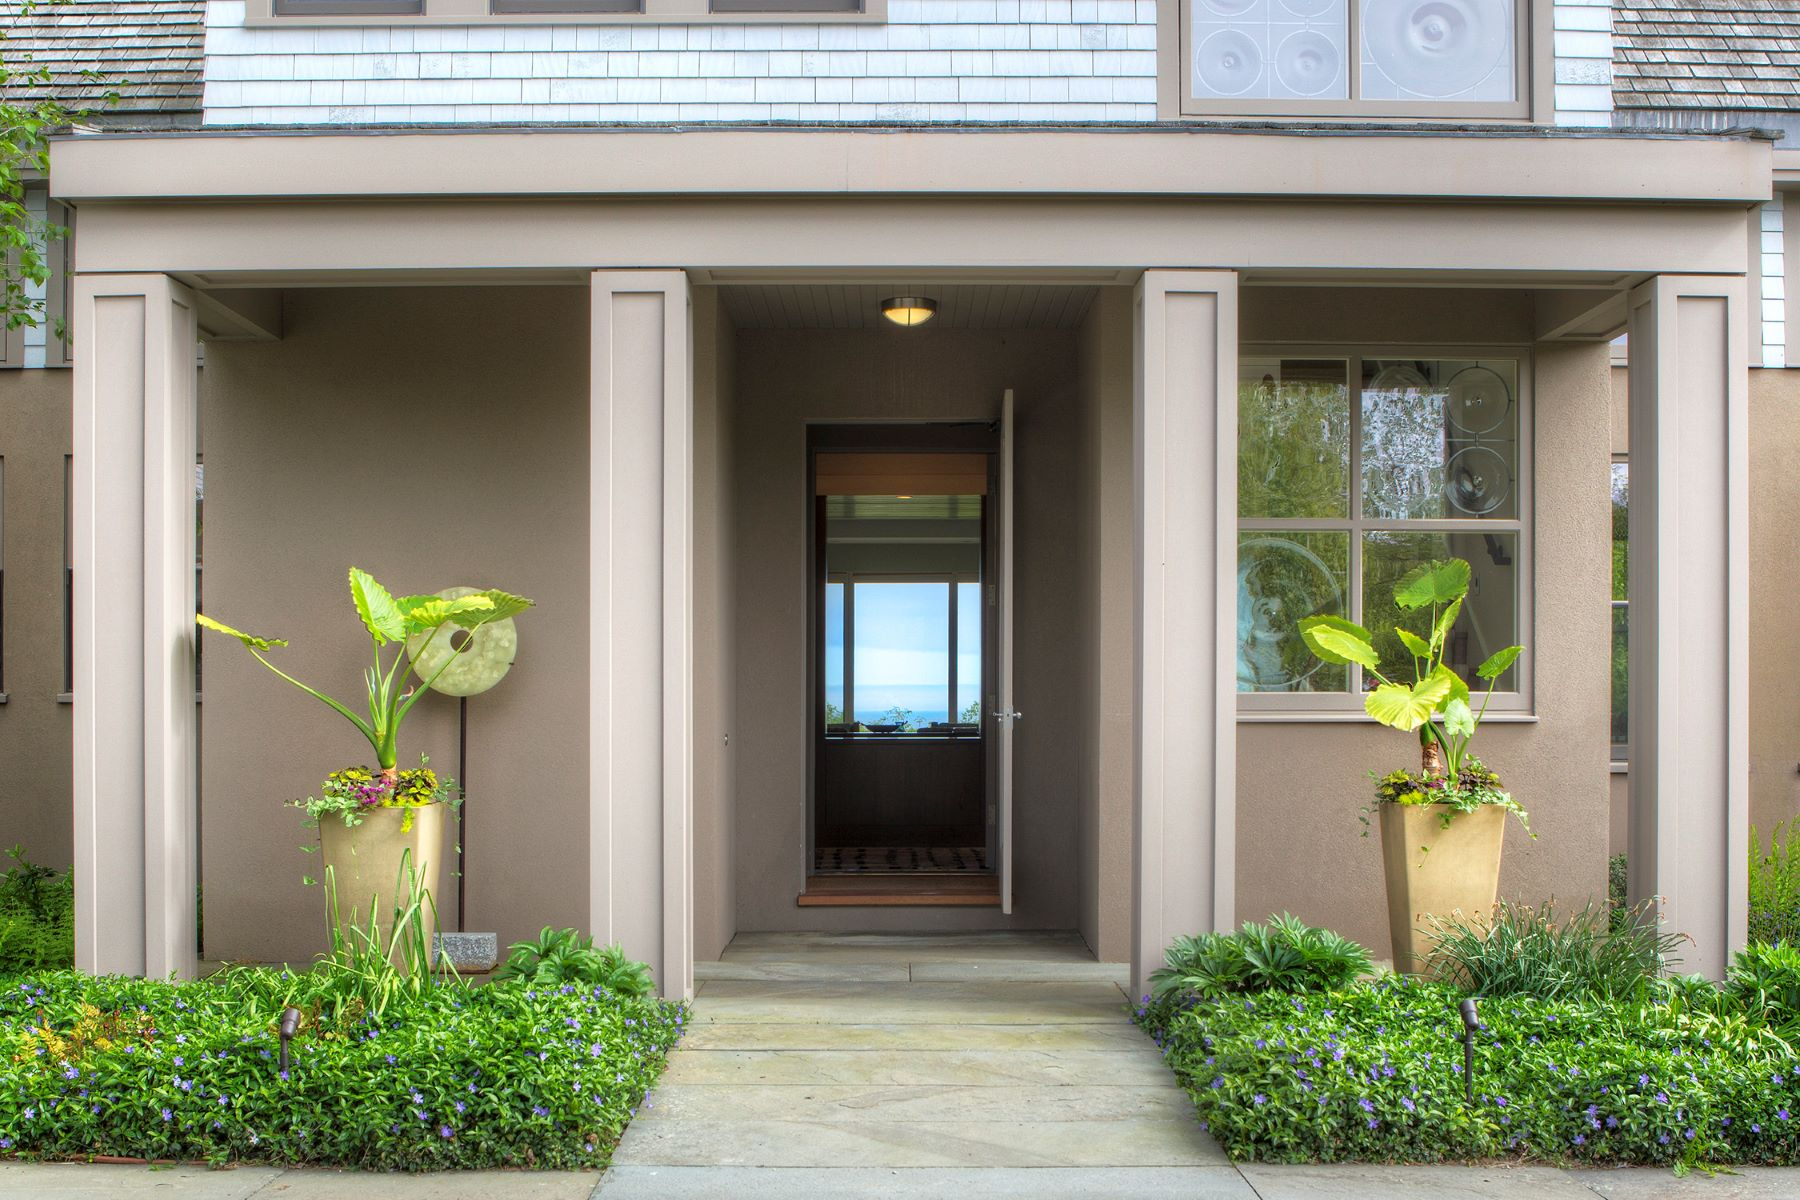 Additional photo for property listing at Ocean View 58 Brenton Road Newport, Rhode Island 02840 United States